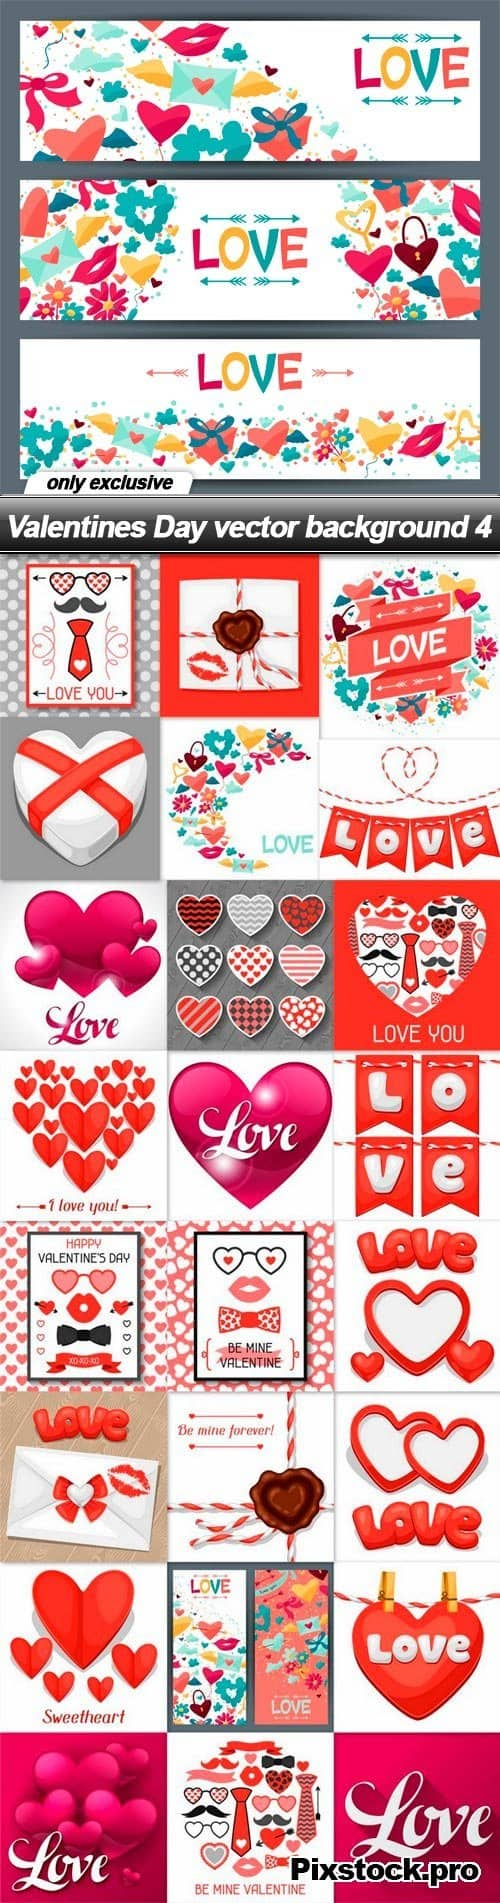 Valentines Day vector background 4 – 25 EPS